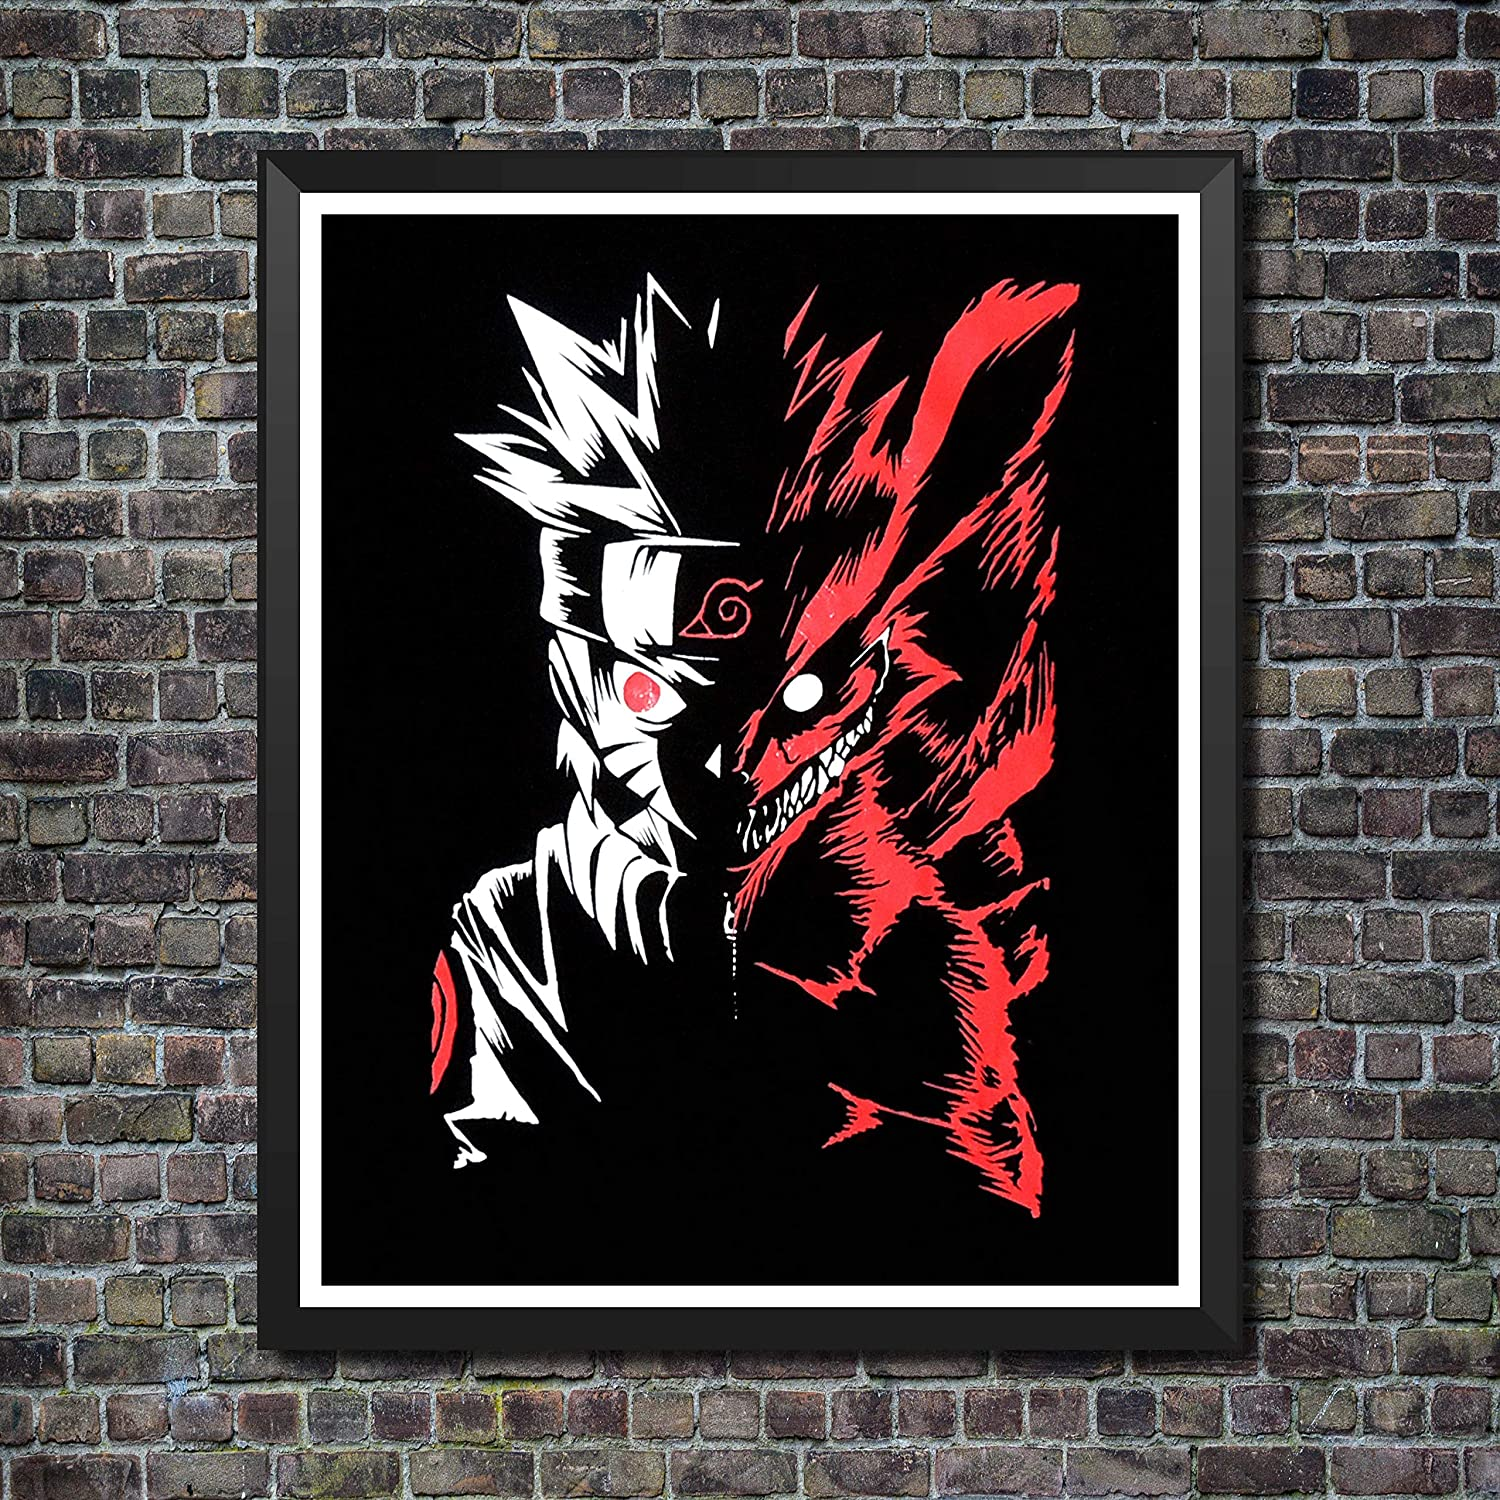 Yansang NARUTO and Jiraiya Anime Art Prints Wall Art Picture for Bedroom Home Decor Canvas Print Poster,8 x 10 Inches,No Frame